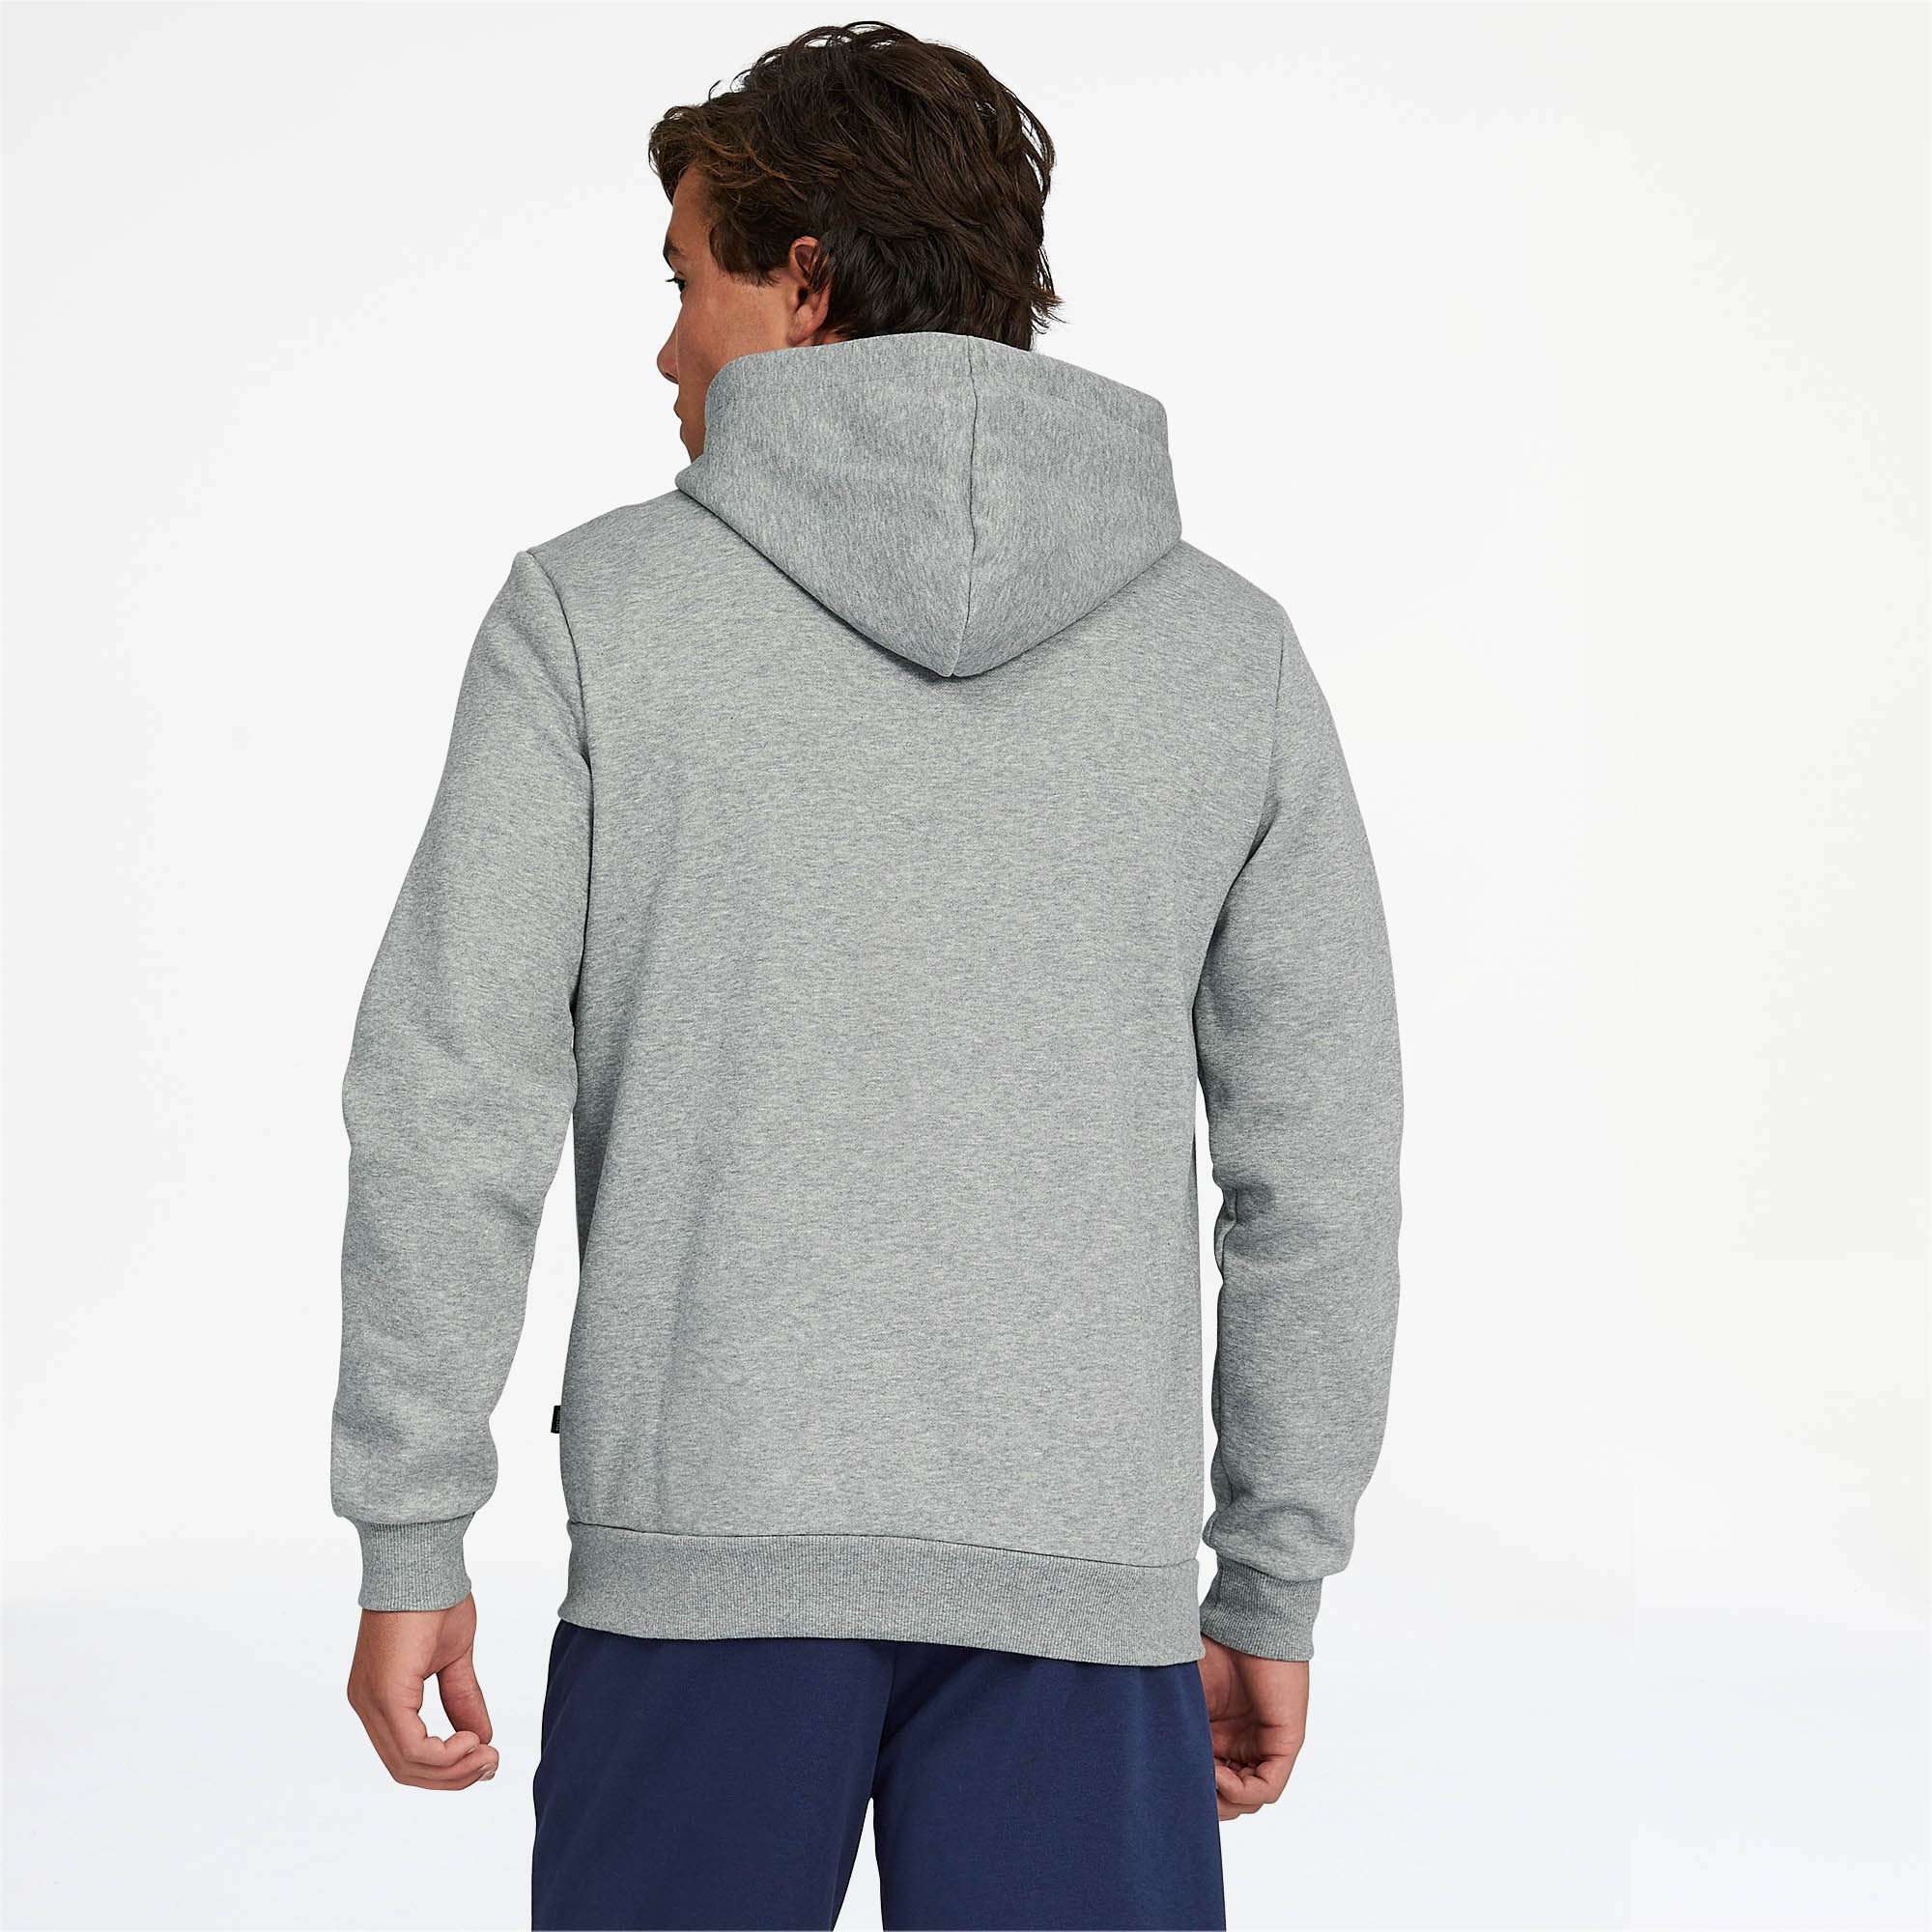 PUMA-Essentials-Men-039-s-Hooded-Fleece-Jacket-Men-Sweat-Basics thumbnail 11